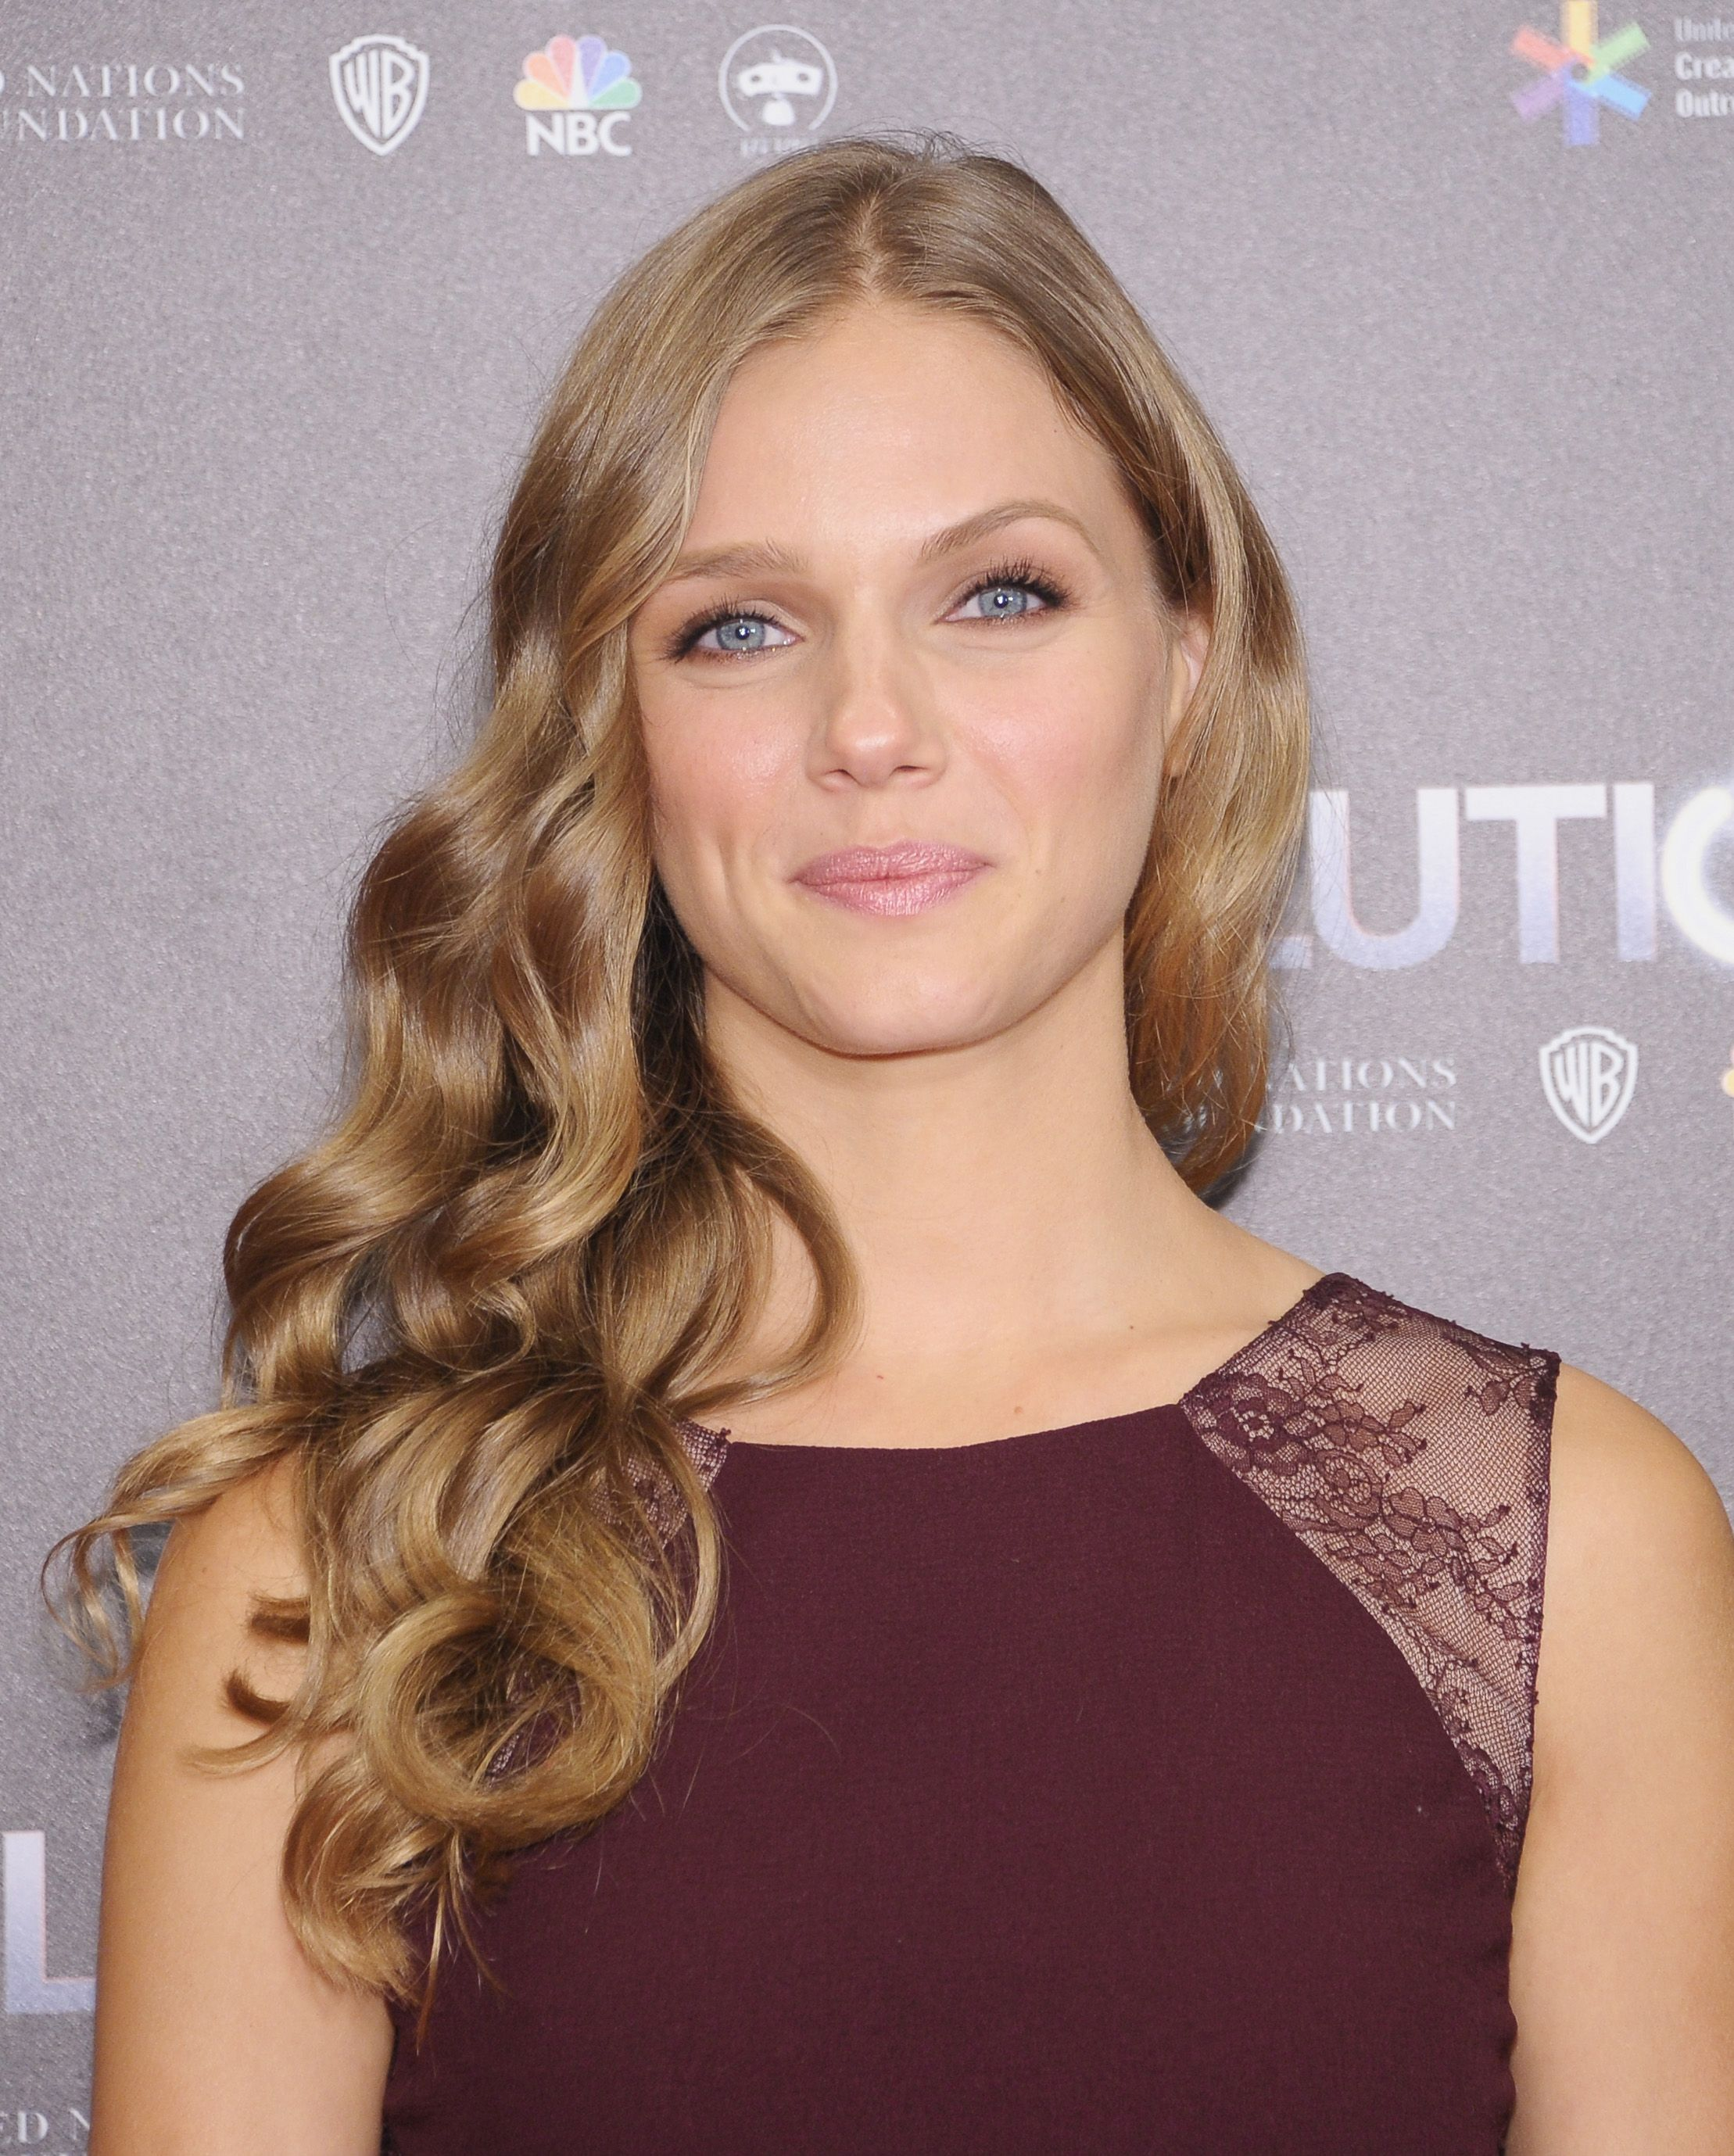 Tracy Spiridakos Revolution season premiere in New York